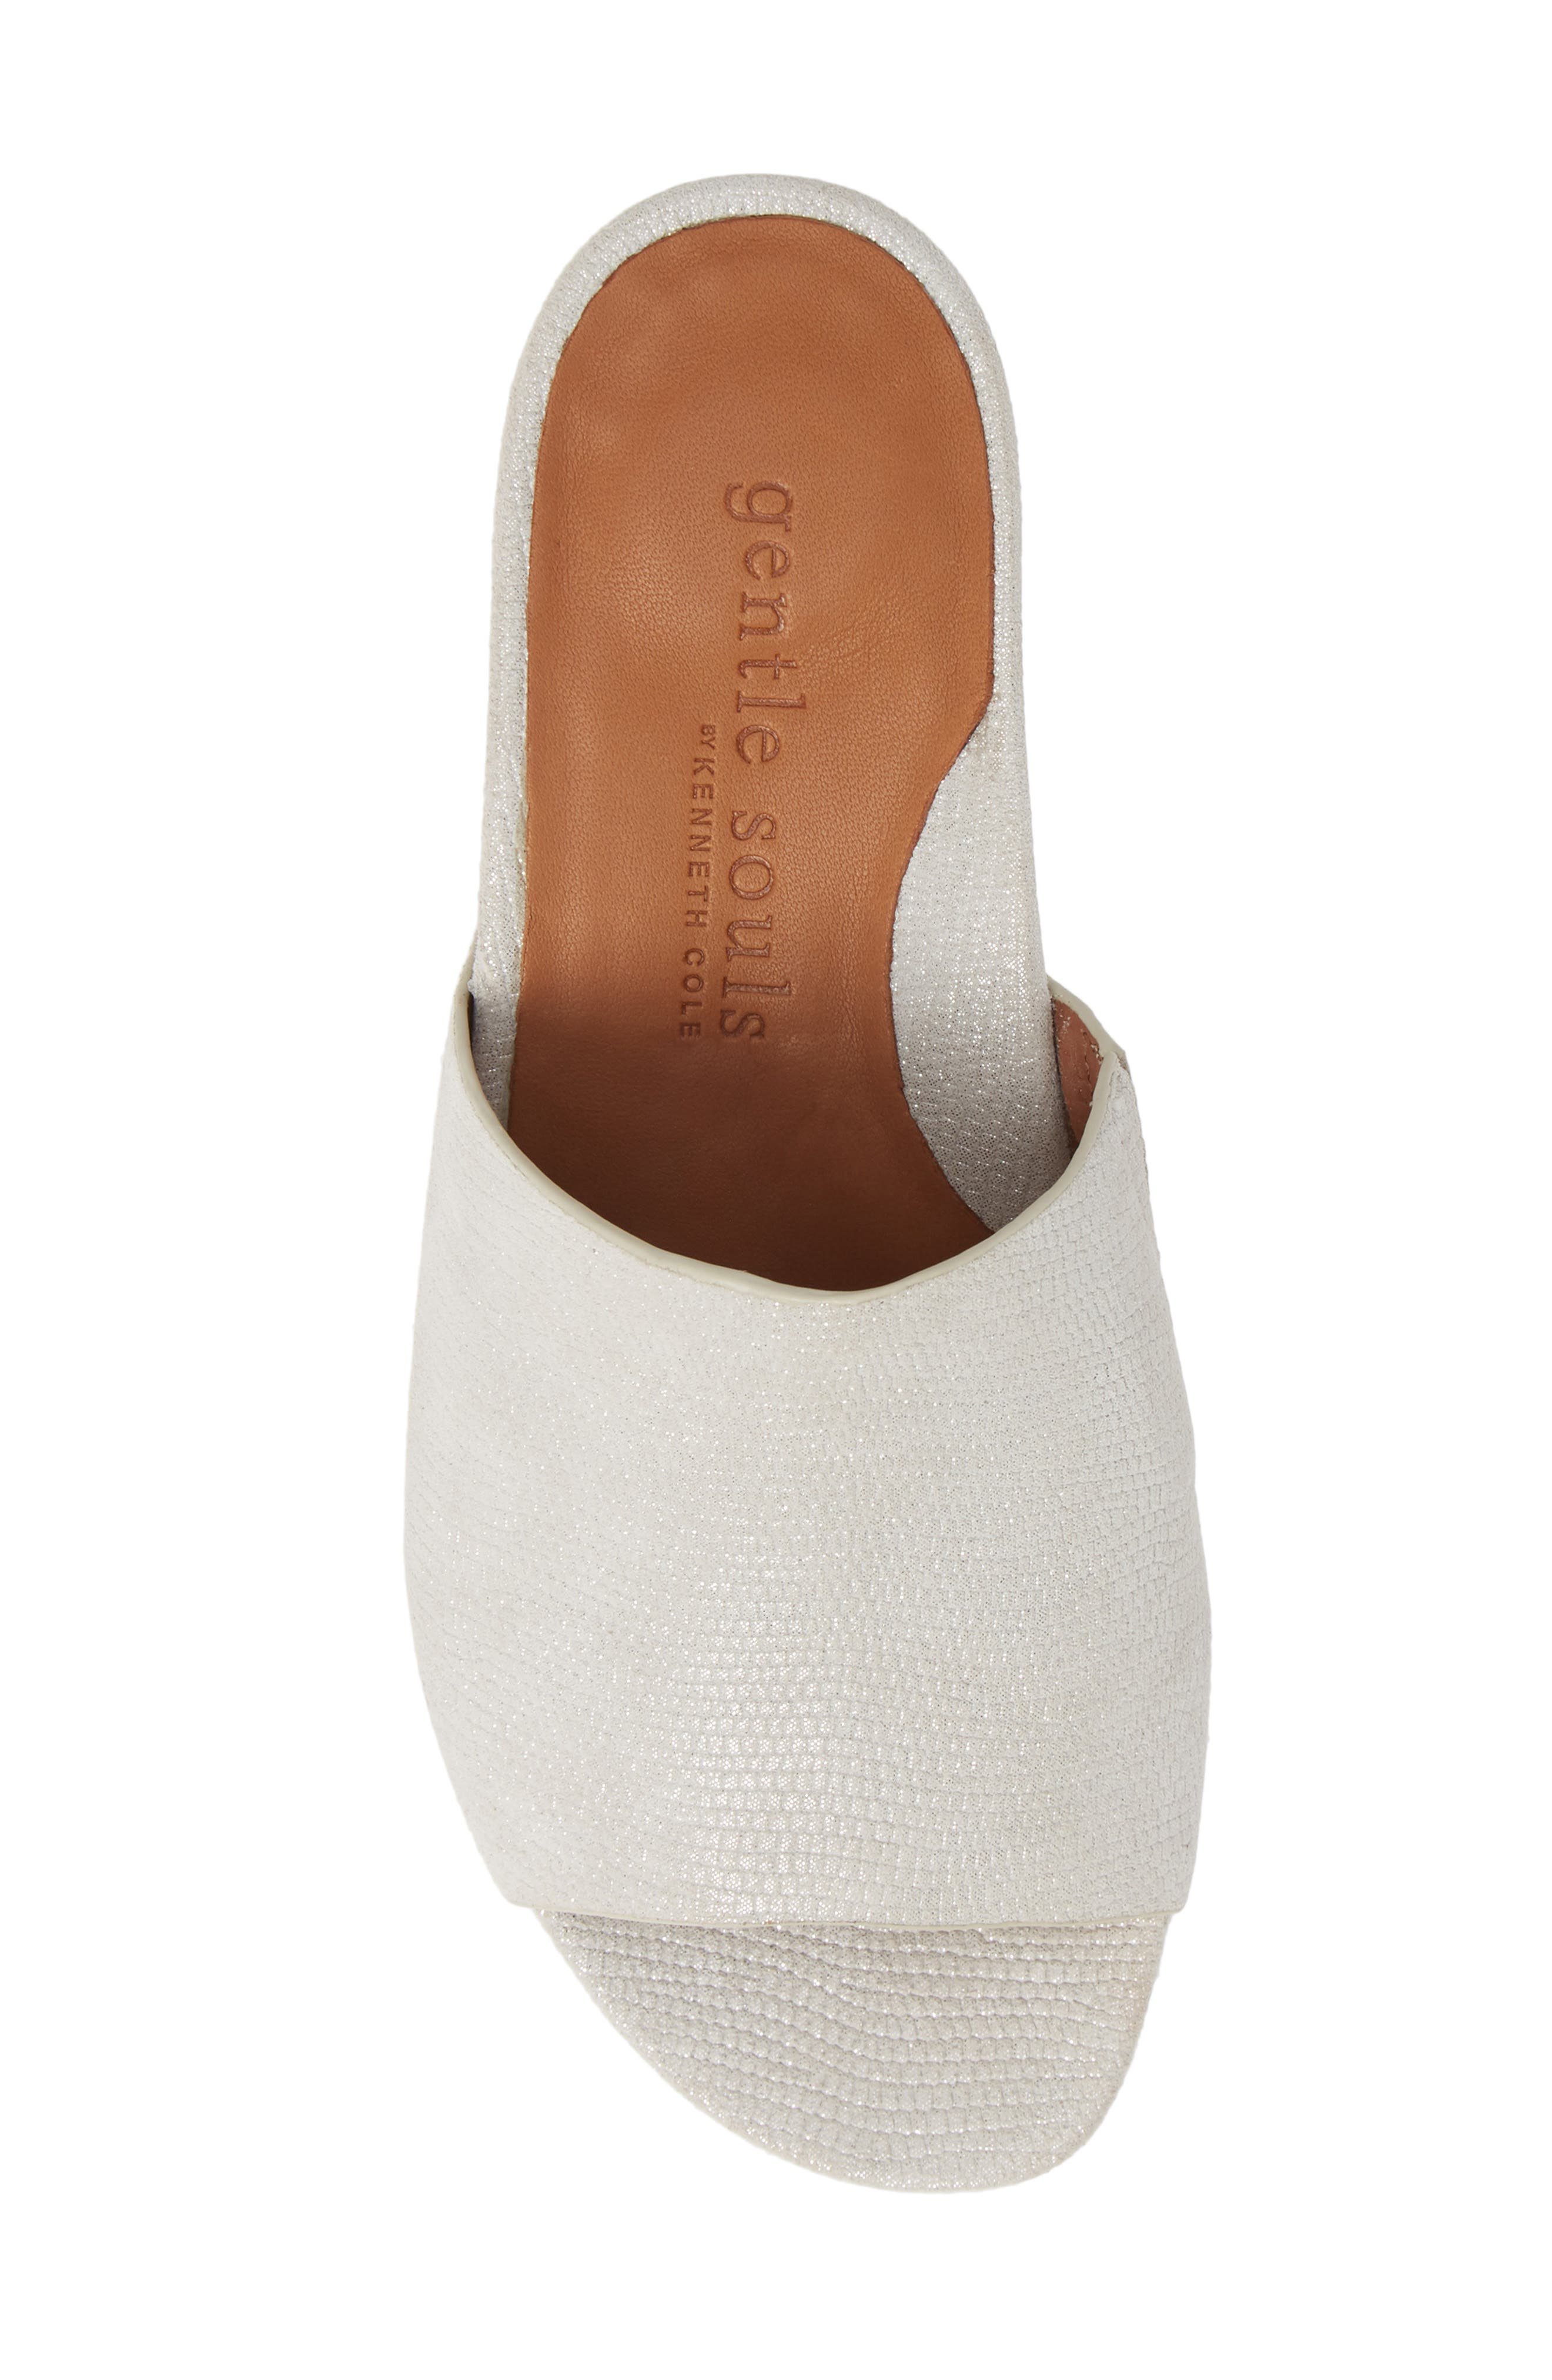 GENTLE SOULS BY KENNETH COLE, Gisele Wedge Slide Sandal, Alternate thumbnail 5, color, WHITE EMBOSSED LEATHER